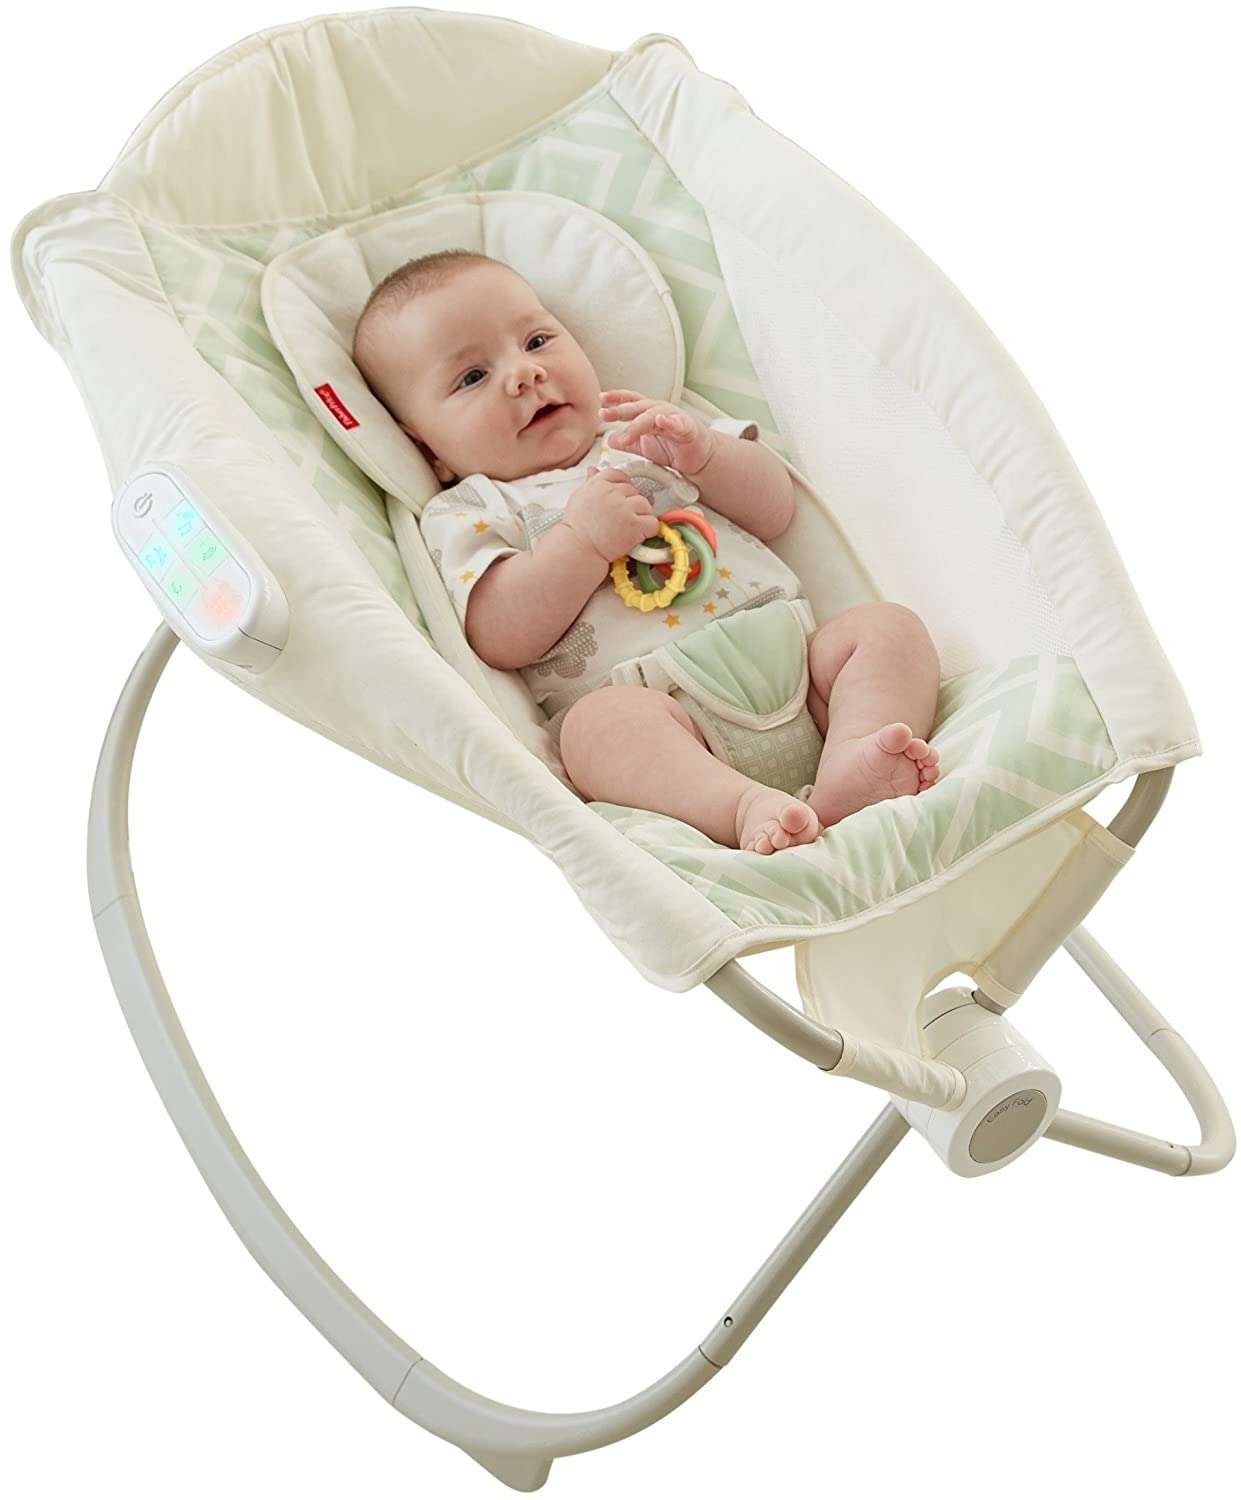 Fisher-Price Deluxe Auto Rock 'n Play Sleeper with SmartConnect, Green/White DNK64